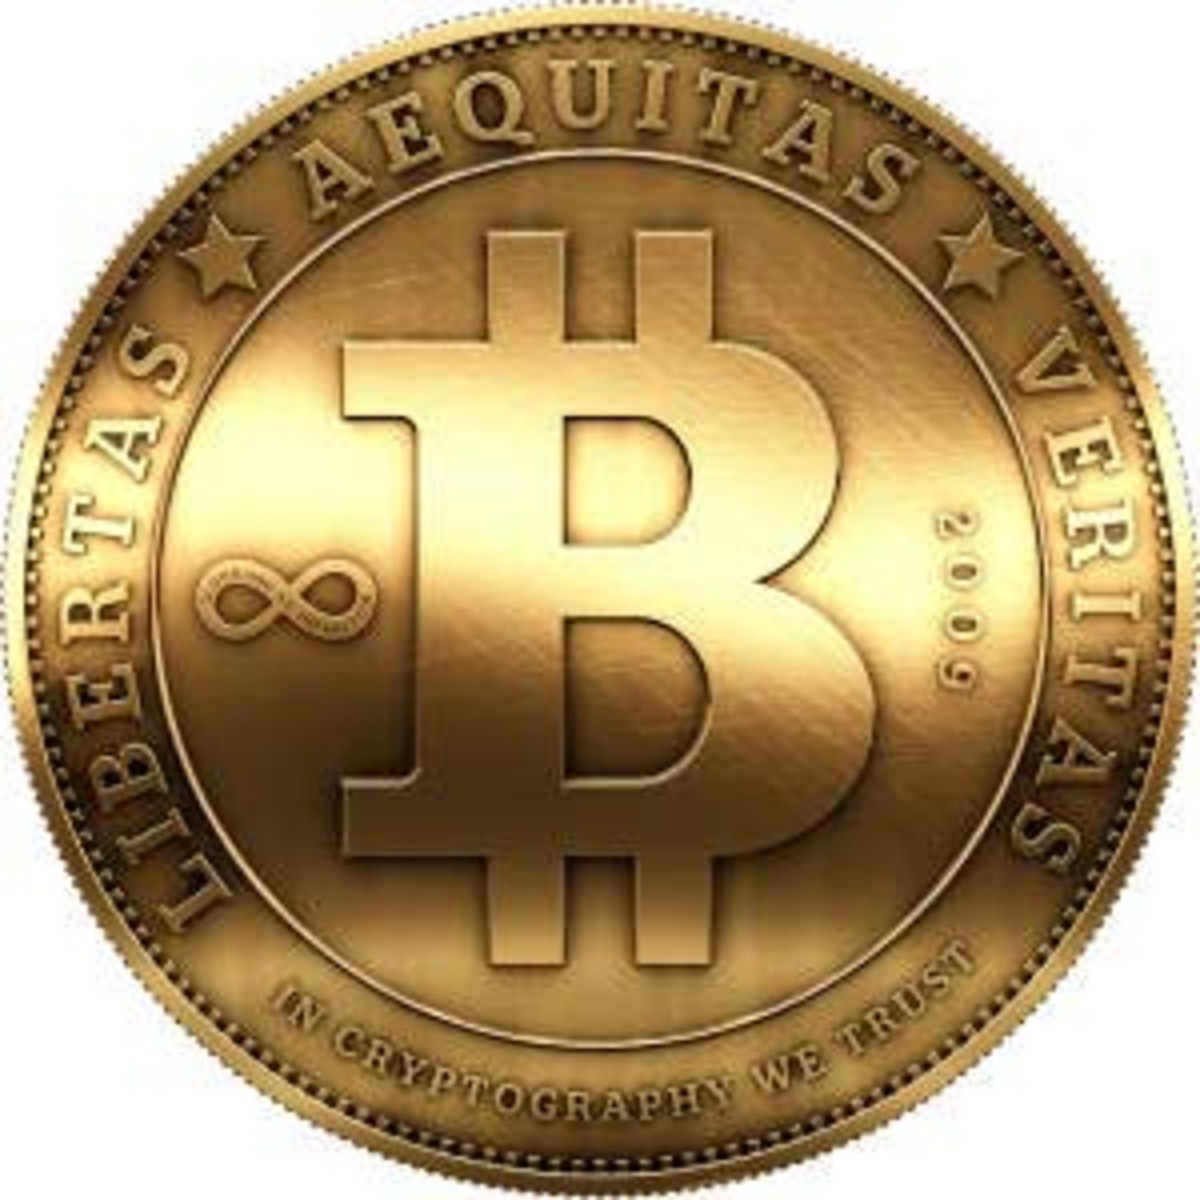 If bitcoins are supposed to be cyberspace currency, why are they about to be issued physically?